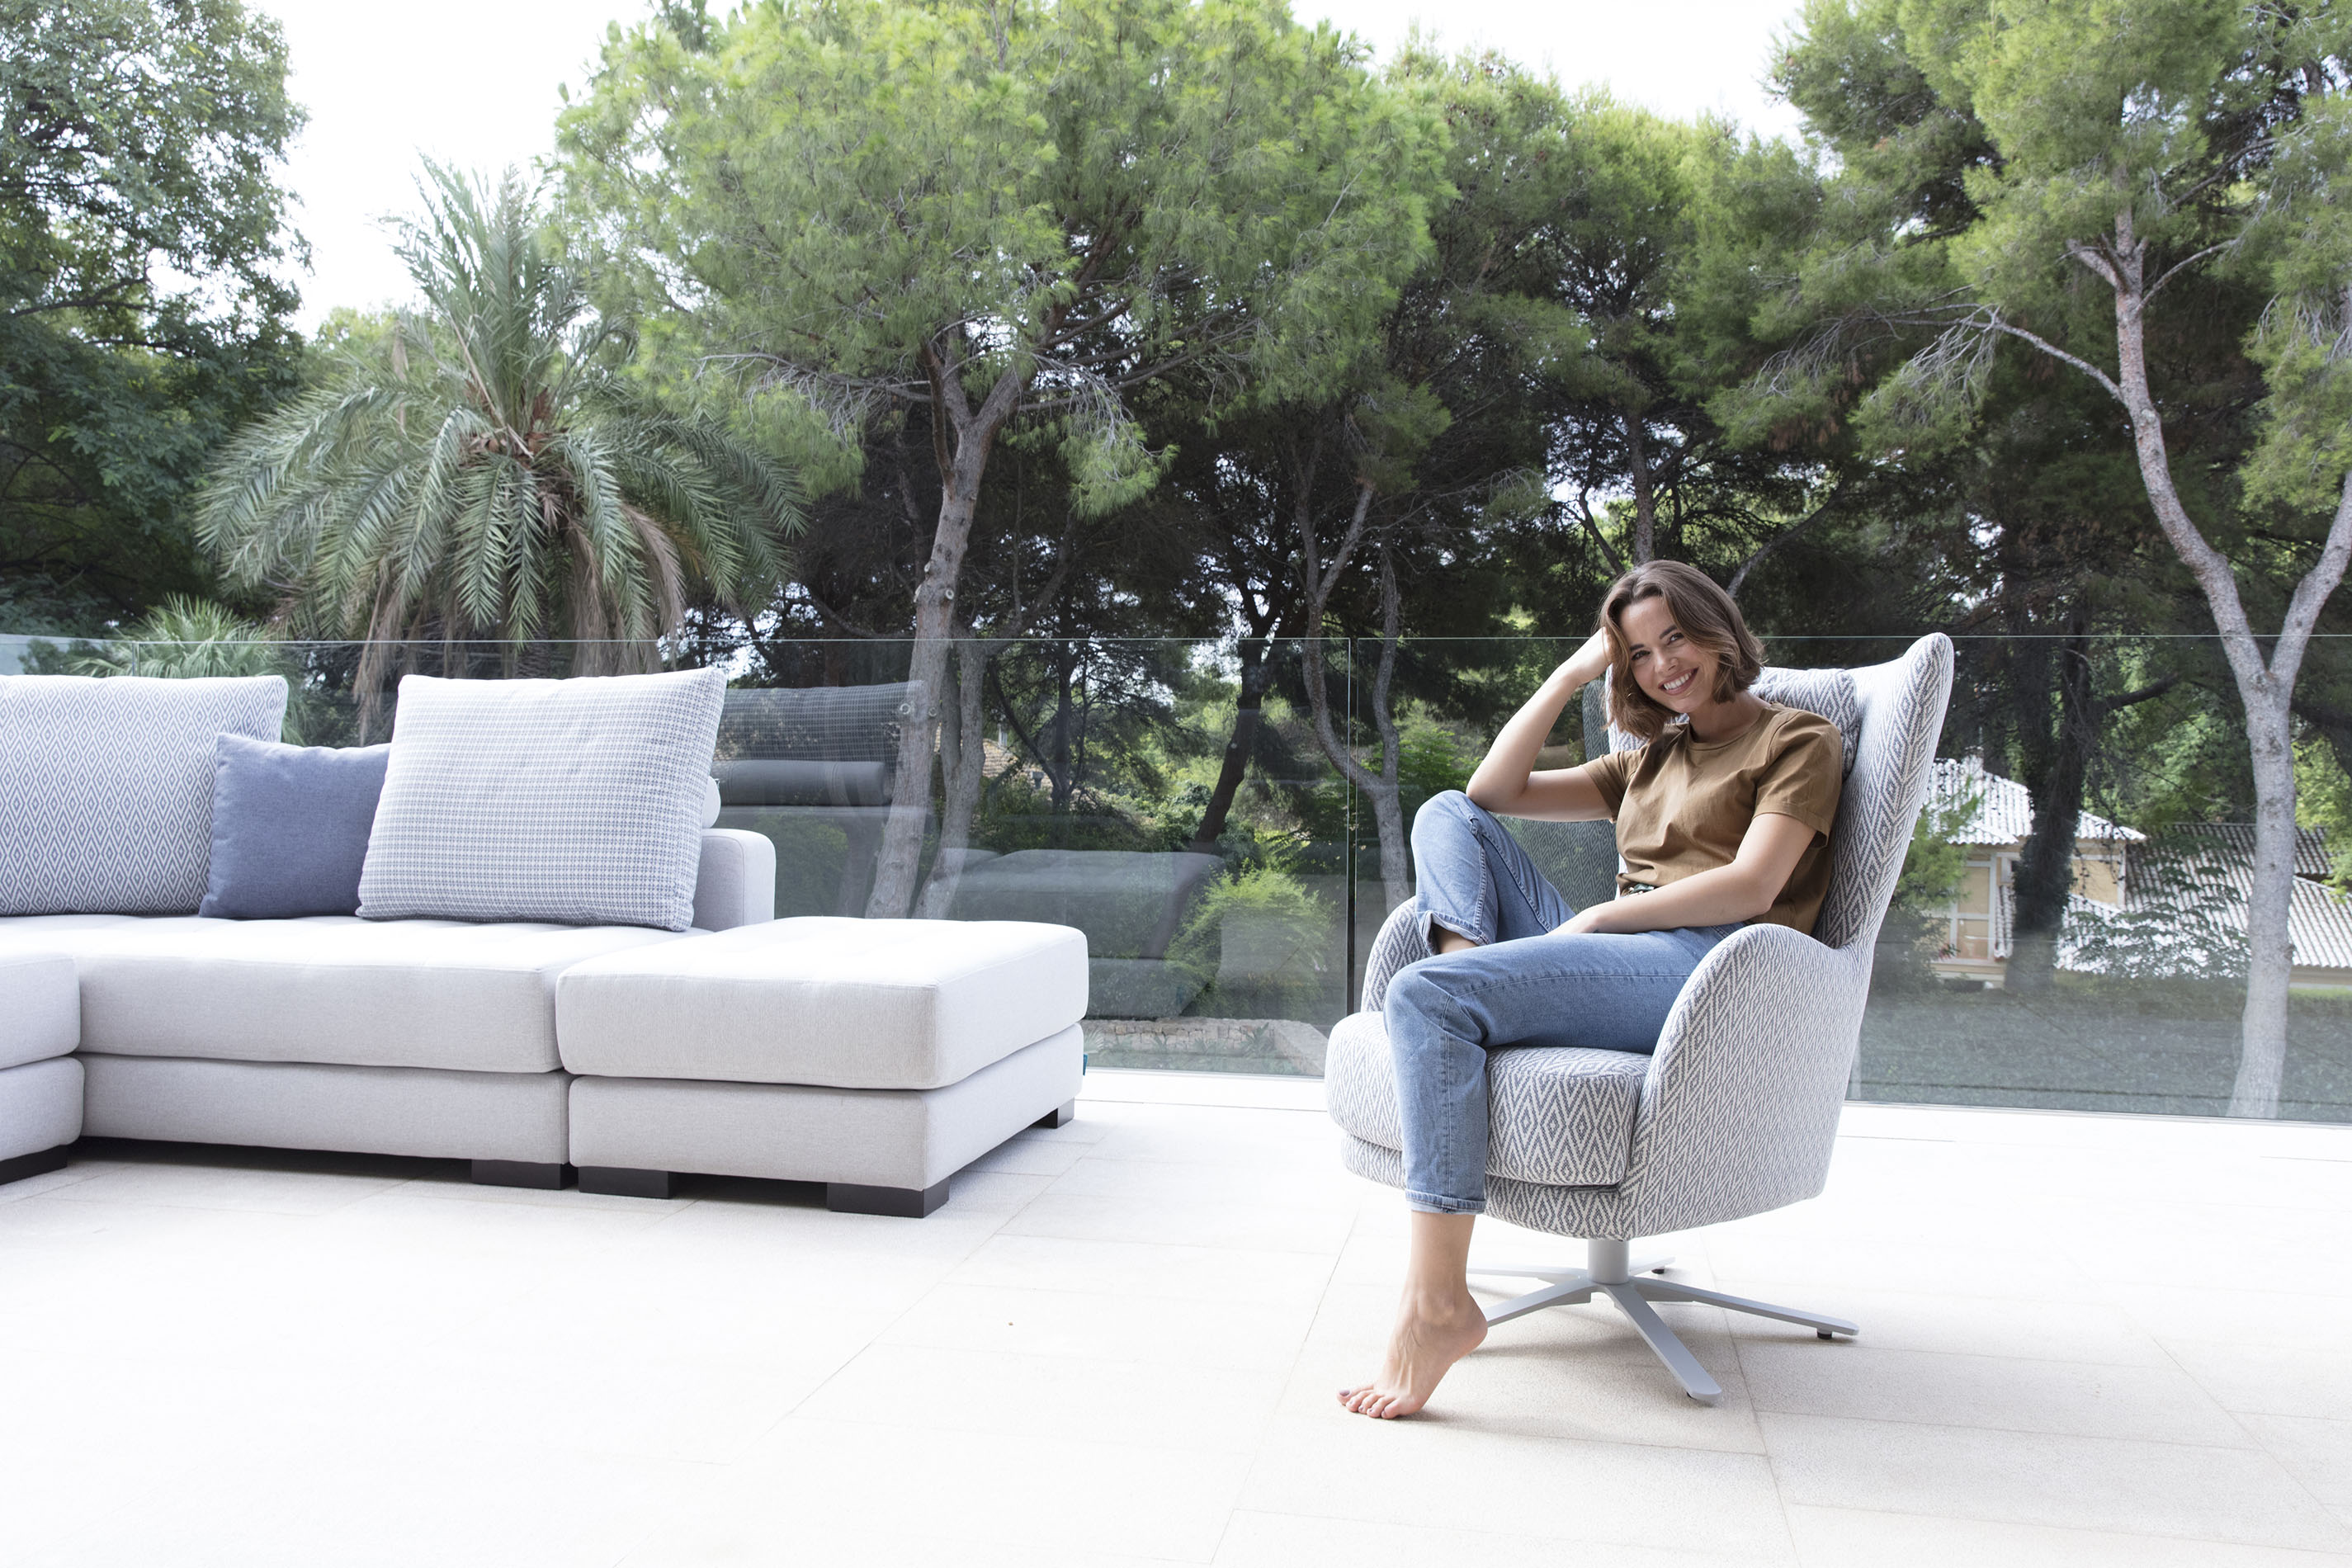 grey fabric with silver legs, corner grey sofa with block wooden legs, swing chair that turns around,